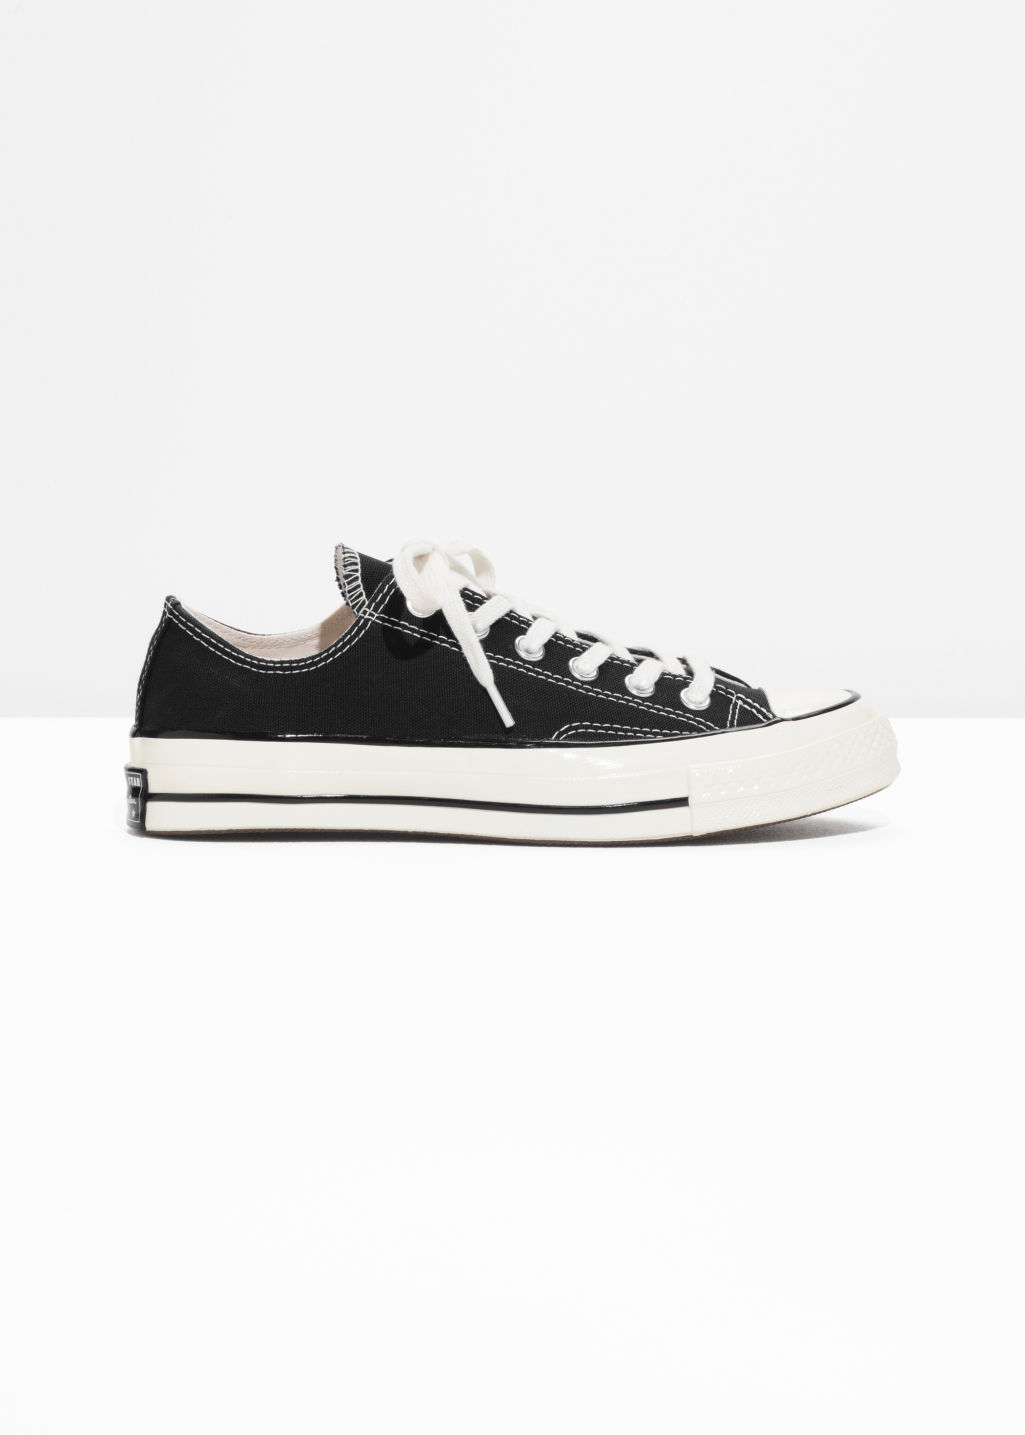 & OTHER STORIES Chuck Taylor All Star 70 Low 48mzs8b